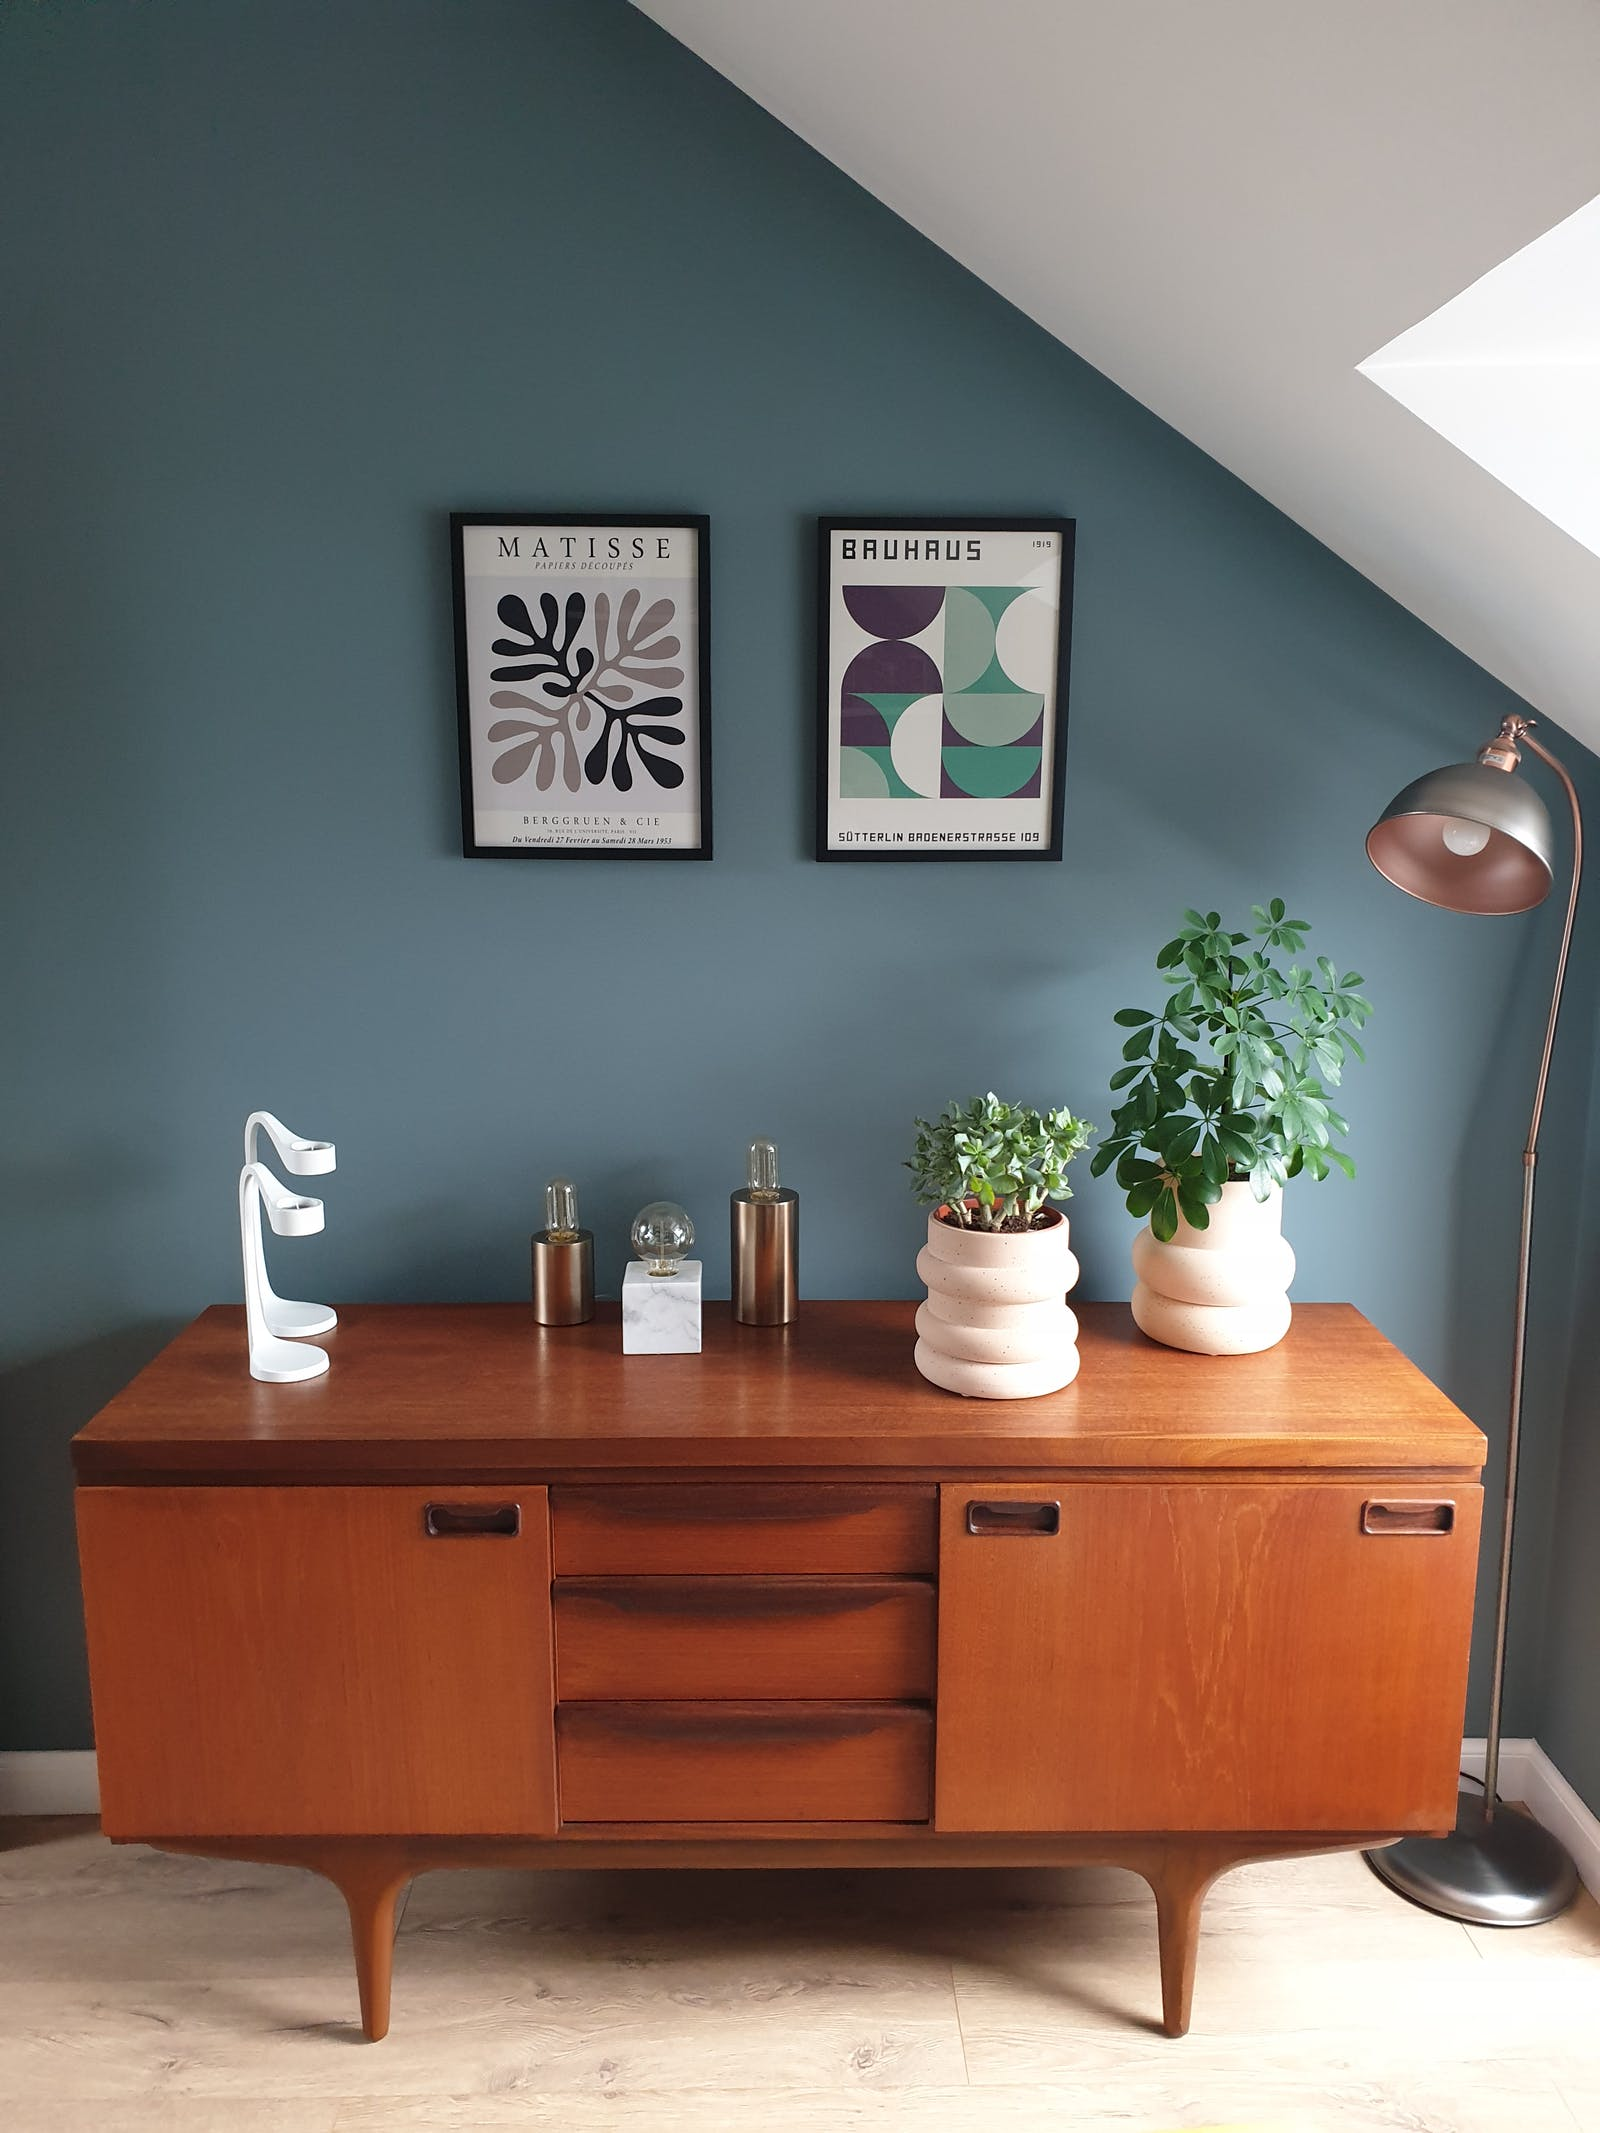 Teal 02 painted walls with 60s inspired warm wooden console